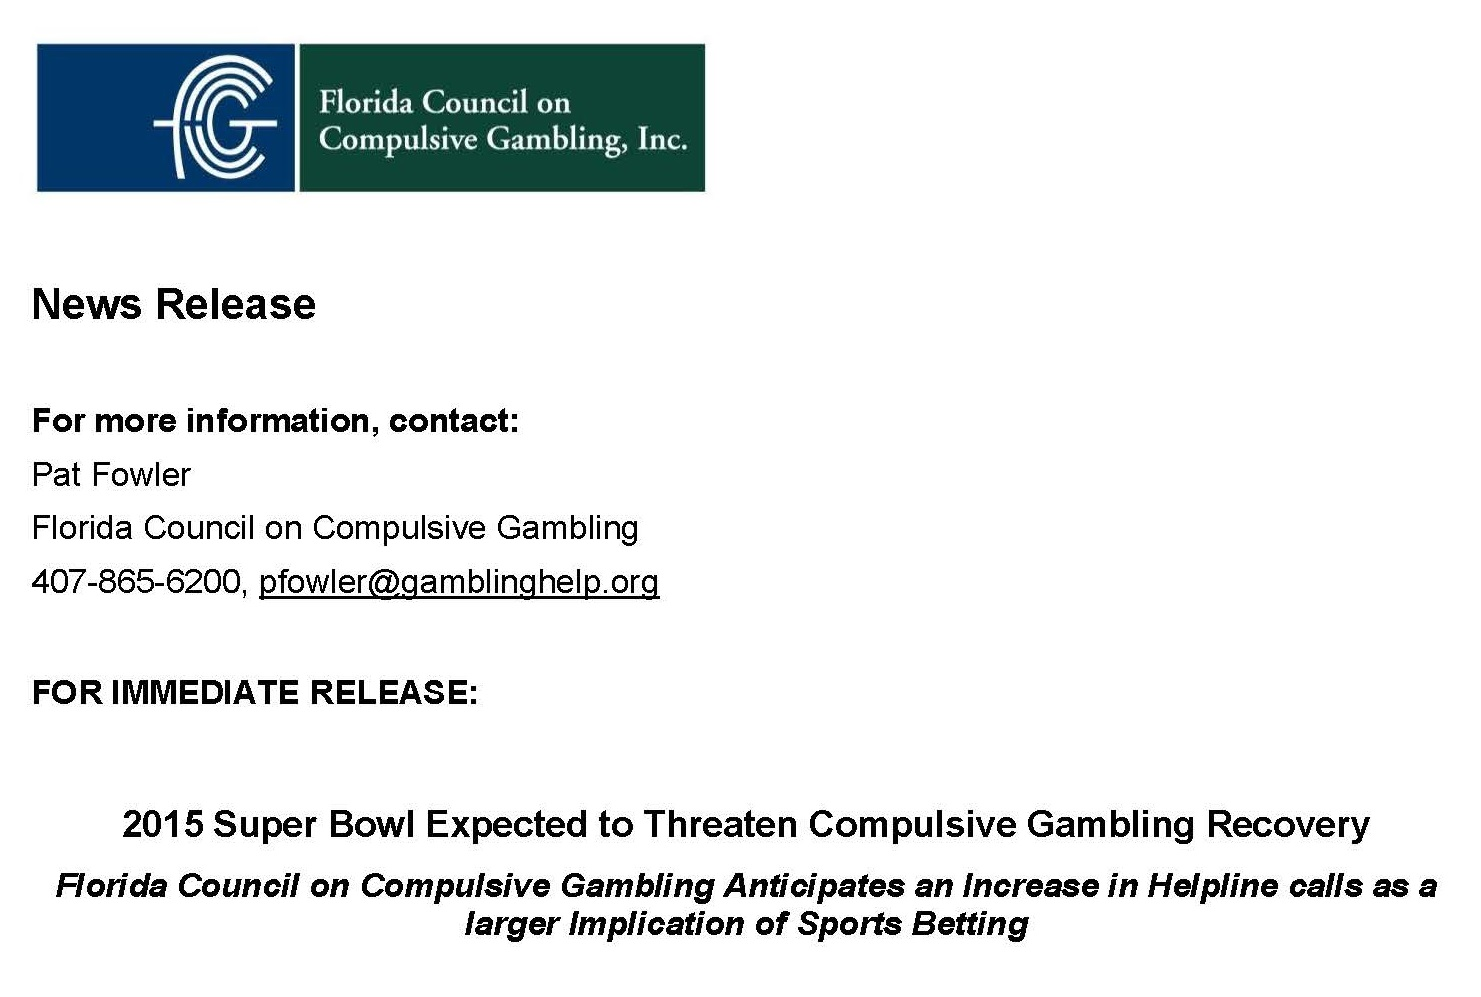 NEWS RELEASE: 2015 Super Bowl Expected to Threaten Compulsive Gambling Recovery